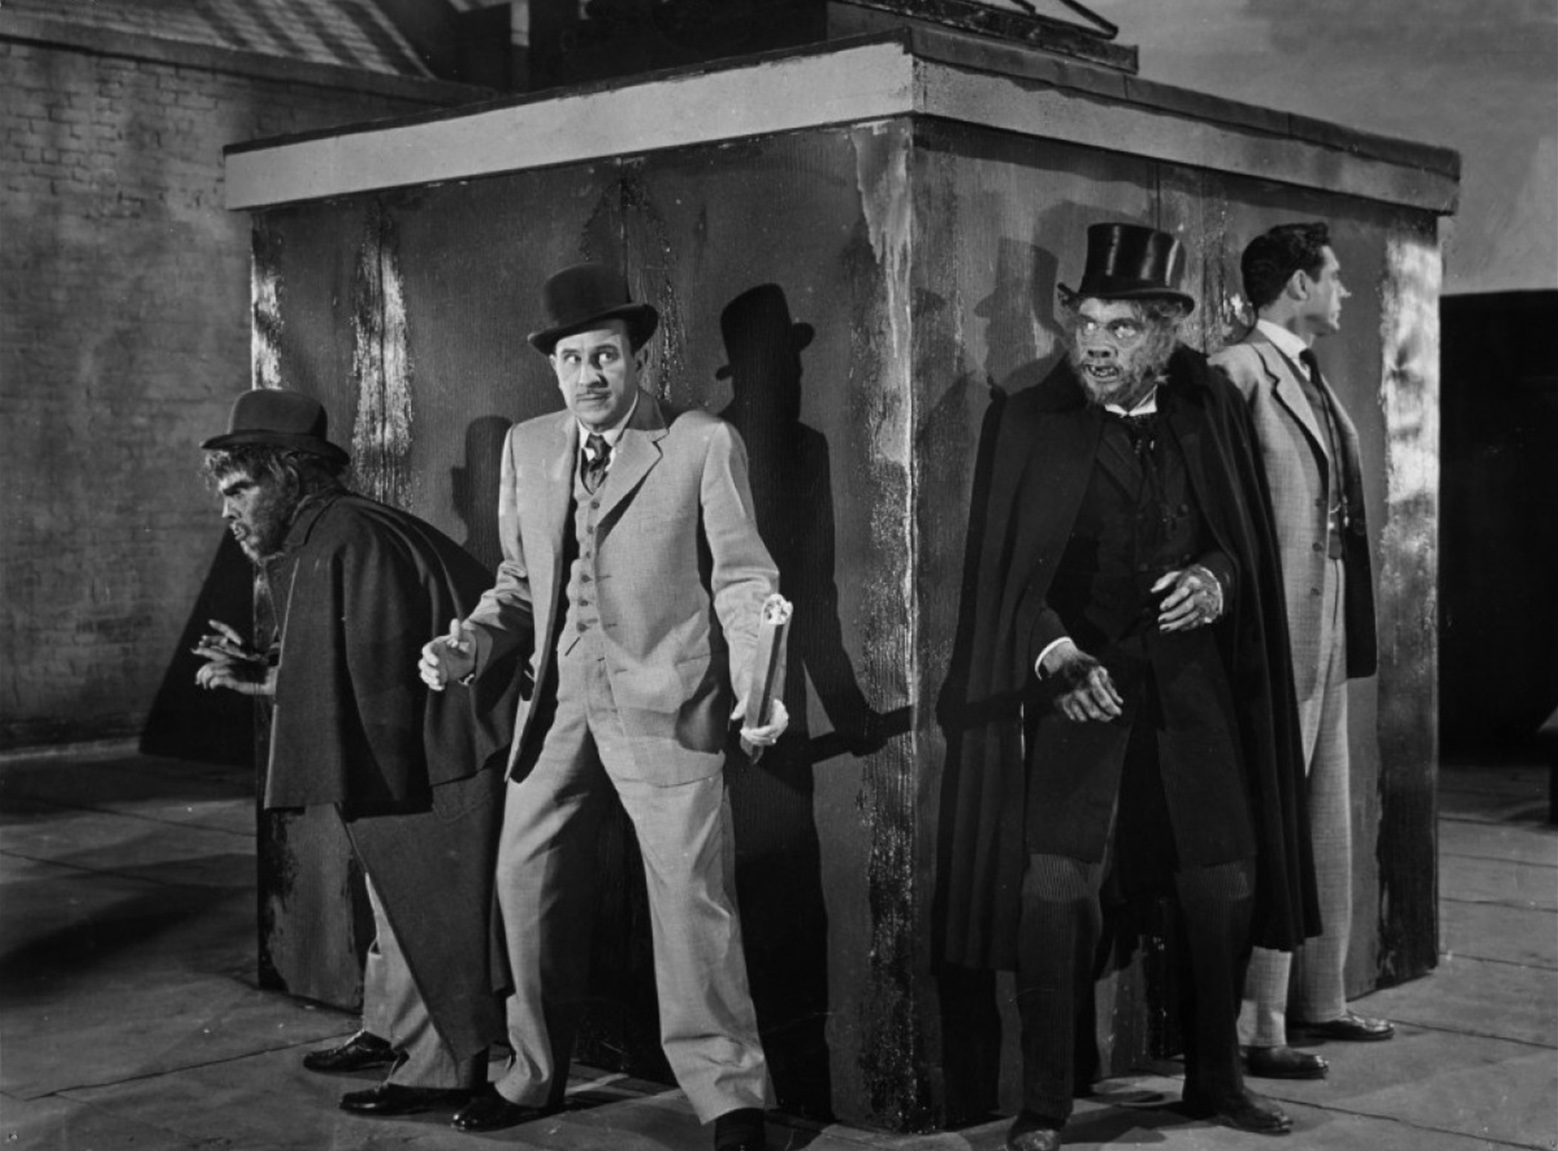 abbott y costello meet dr jekyll and mr hyde